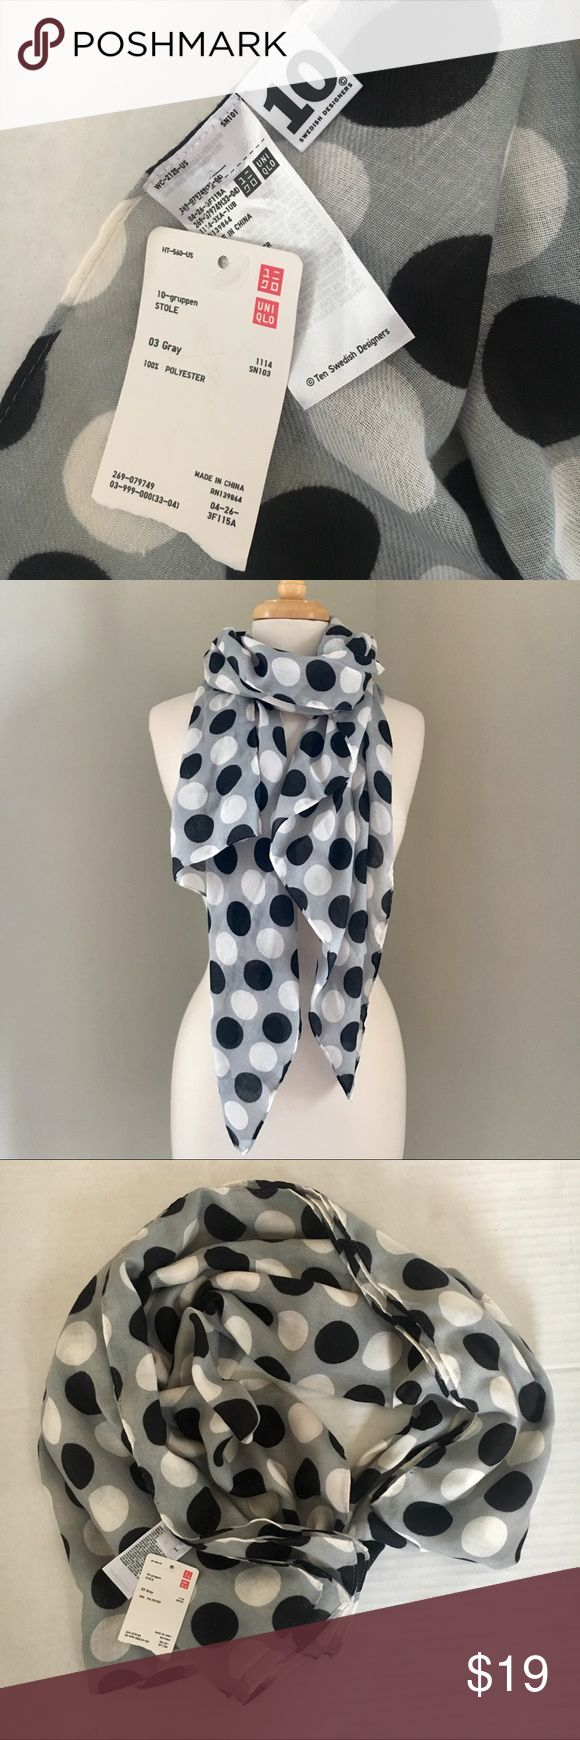 """NWT Uniqlo polka dot scarf gray white black New with tags scarf from Uniqlo. 10 Swedish Designers tag. Lightweight and breezy. Gray, white, and black. Large polka dot design. No flaws. Approx. 28"""" wide and 68"""" long. Questions & offers welcome! Accessories Scarves & Wraps"""